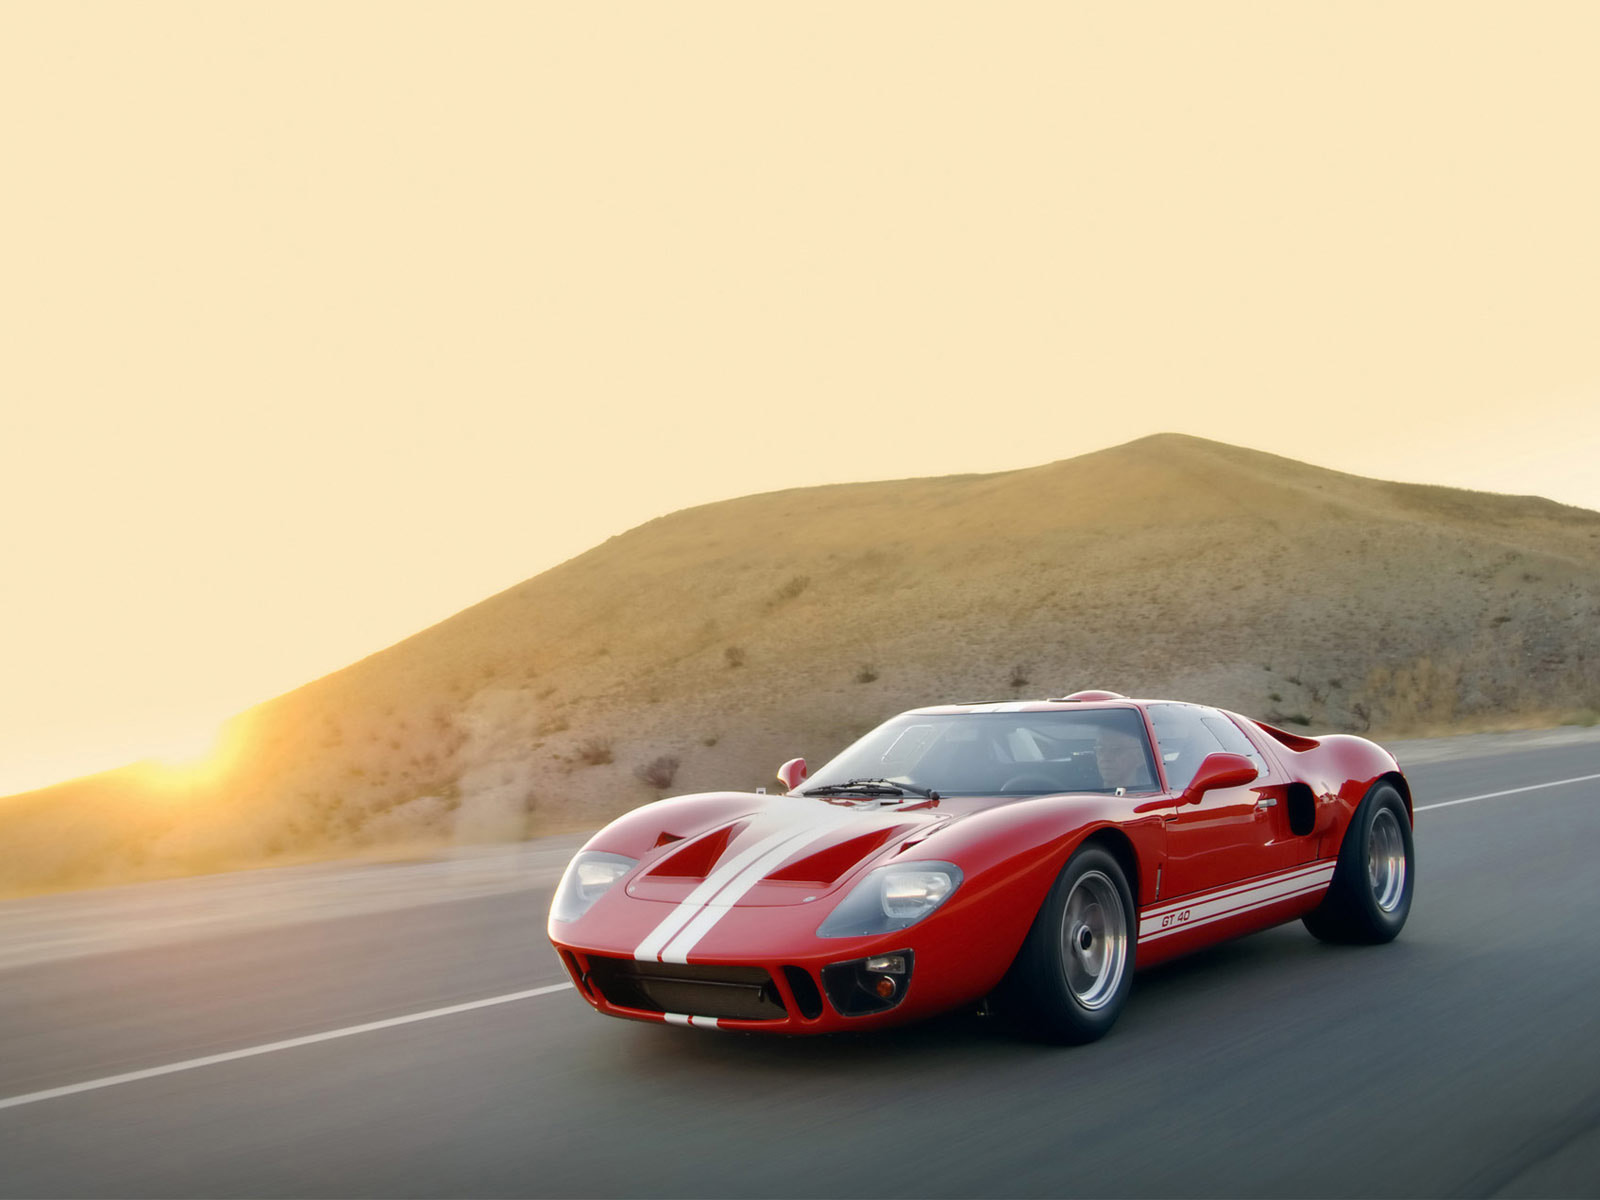 Ford Gt Images Nom Hd Wallpaper And Background Photos